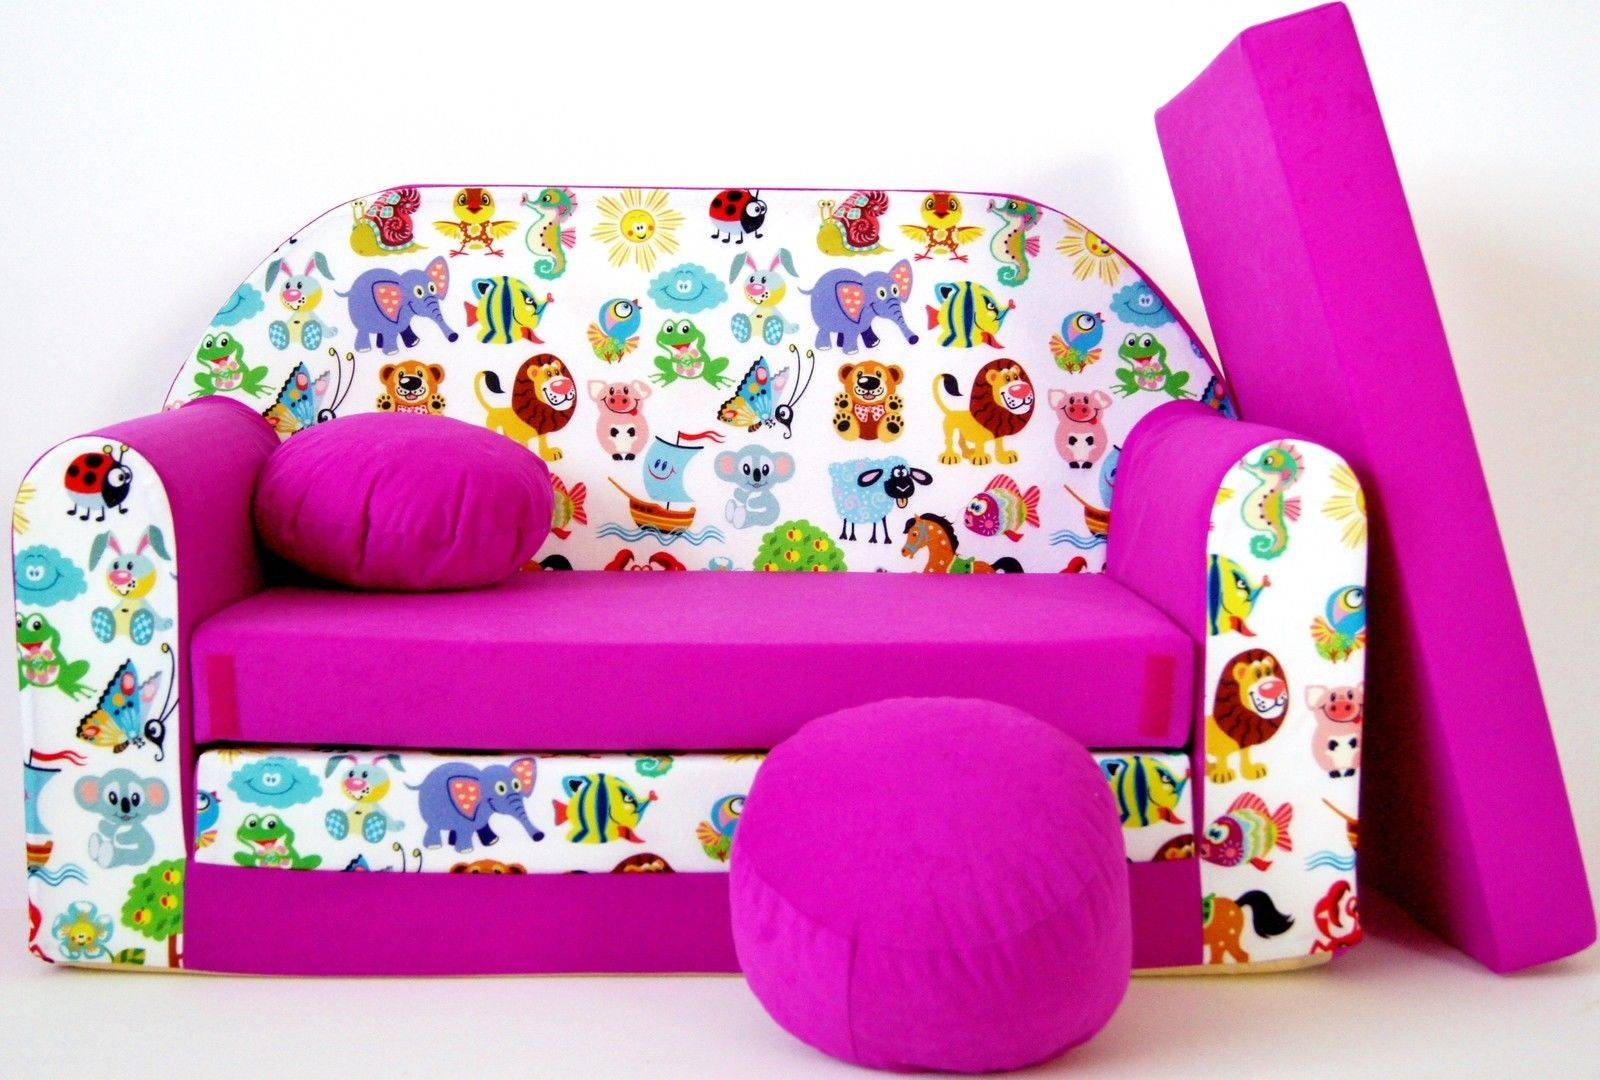 Sofas Center : Striking Kids Sofa Image Concept Beds Verykids in Cheap Kids Sofas (Image 28 of 30)